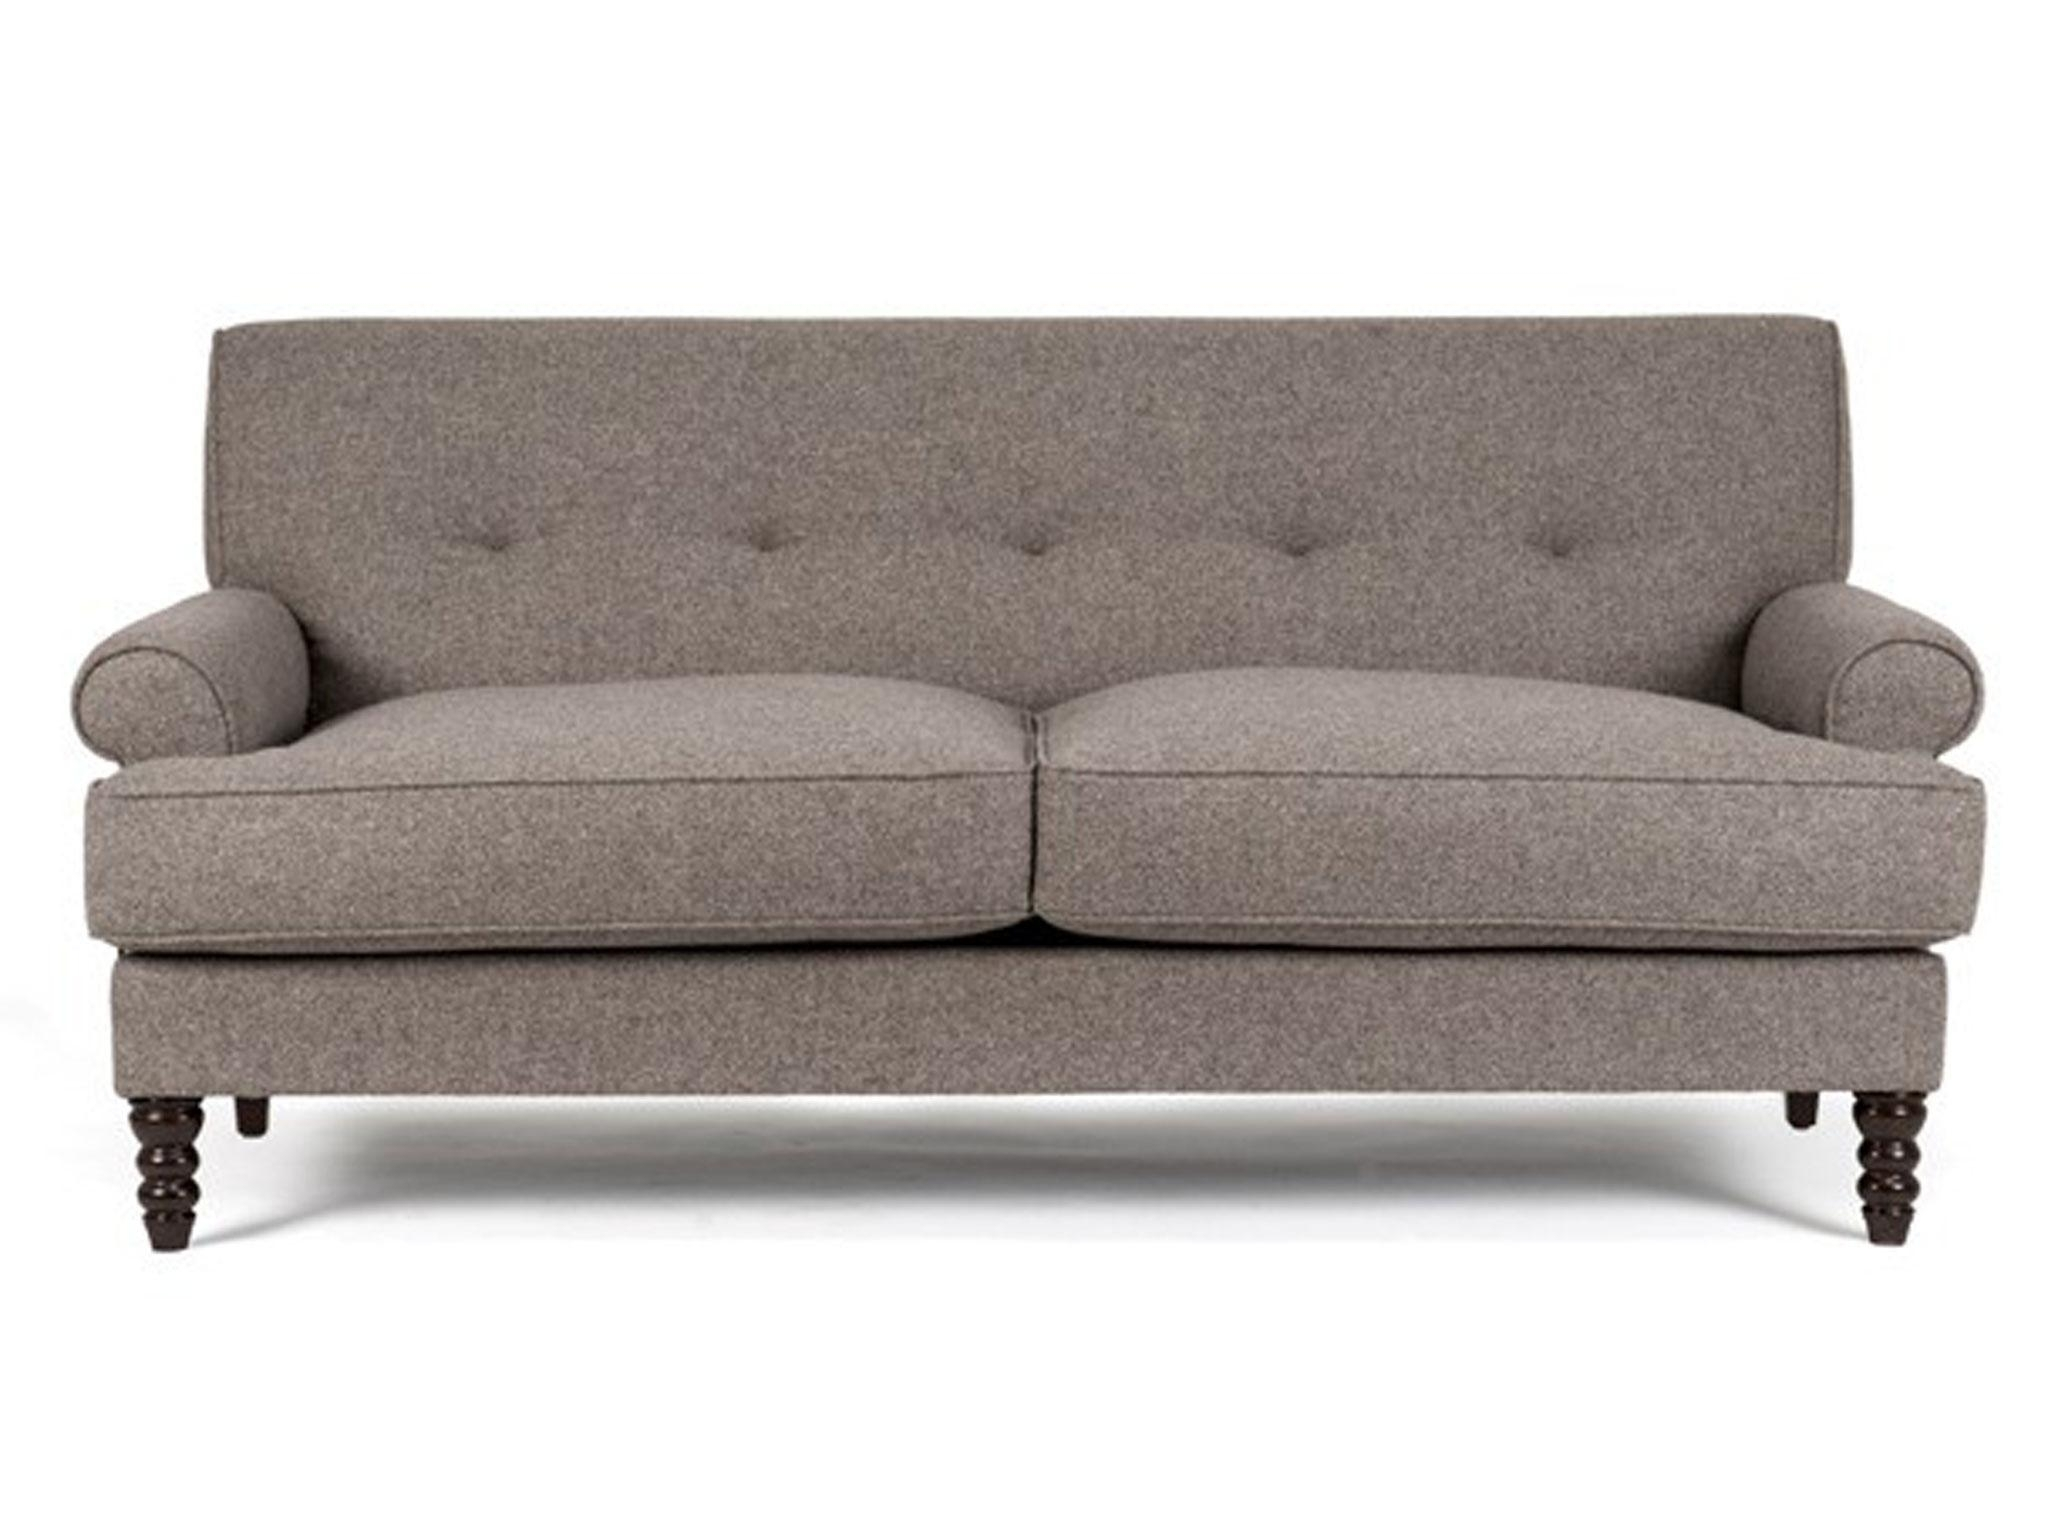 10 Best Sofas | The Independent Intended For Elm Grande Ii 2 Piece Sectionals (Image 4 of 25)